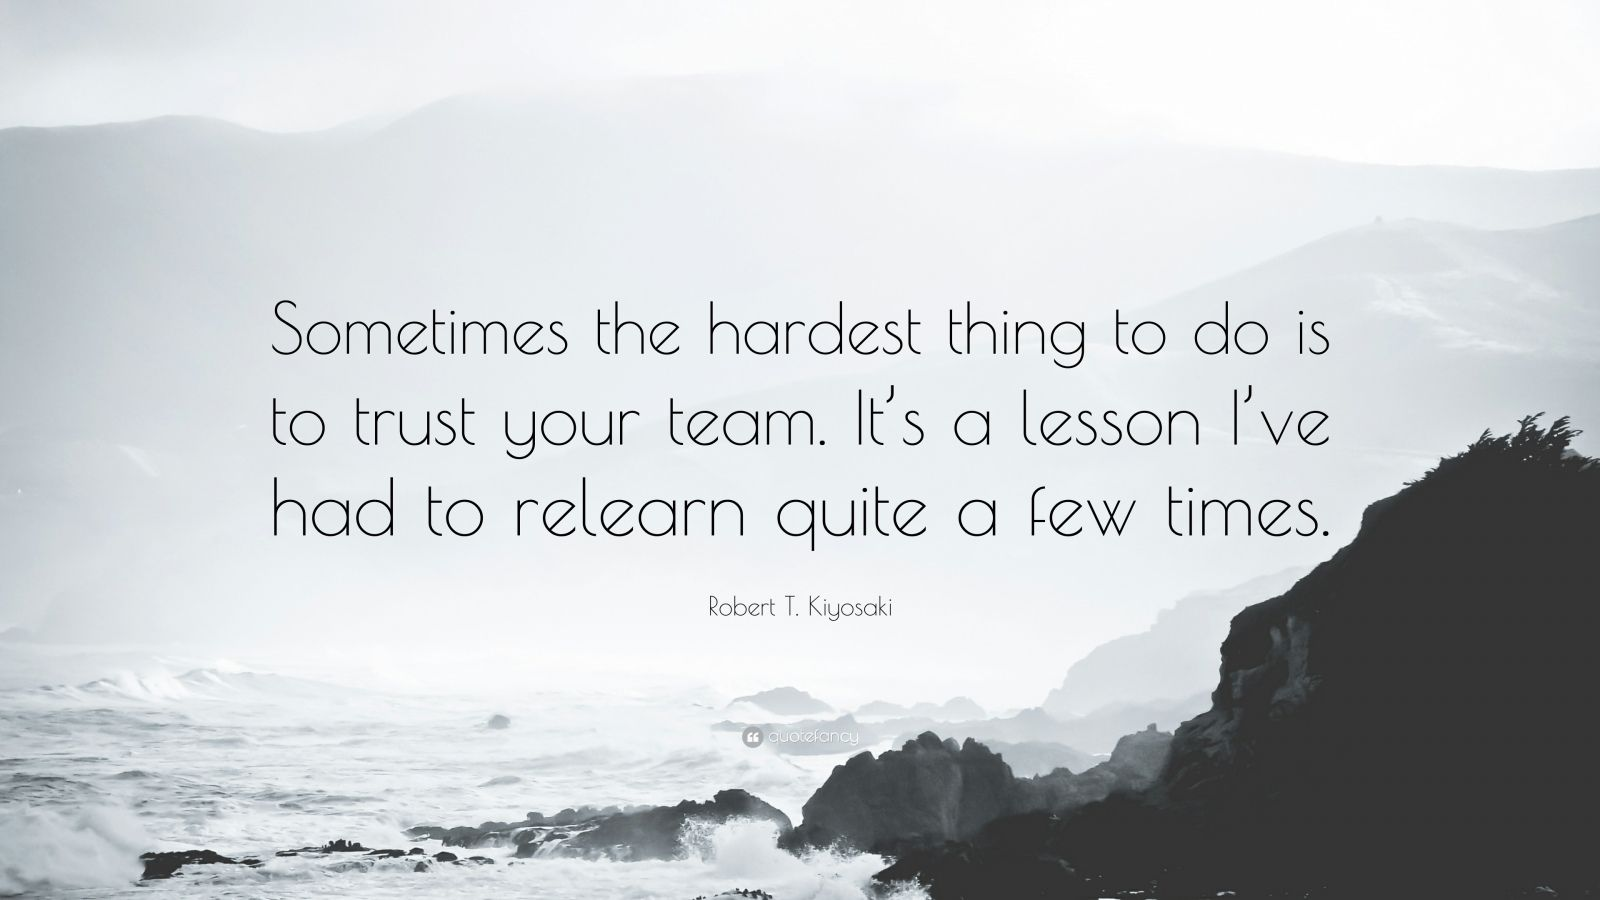 """Robert T. Kiyosaki Quote: """"Sometimes the hardest thing to do is to trust your team. It's a lesson I've had to relearn quite a few times."""""""